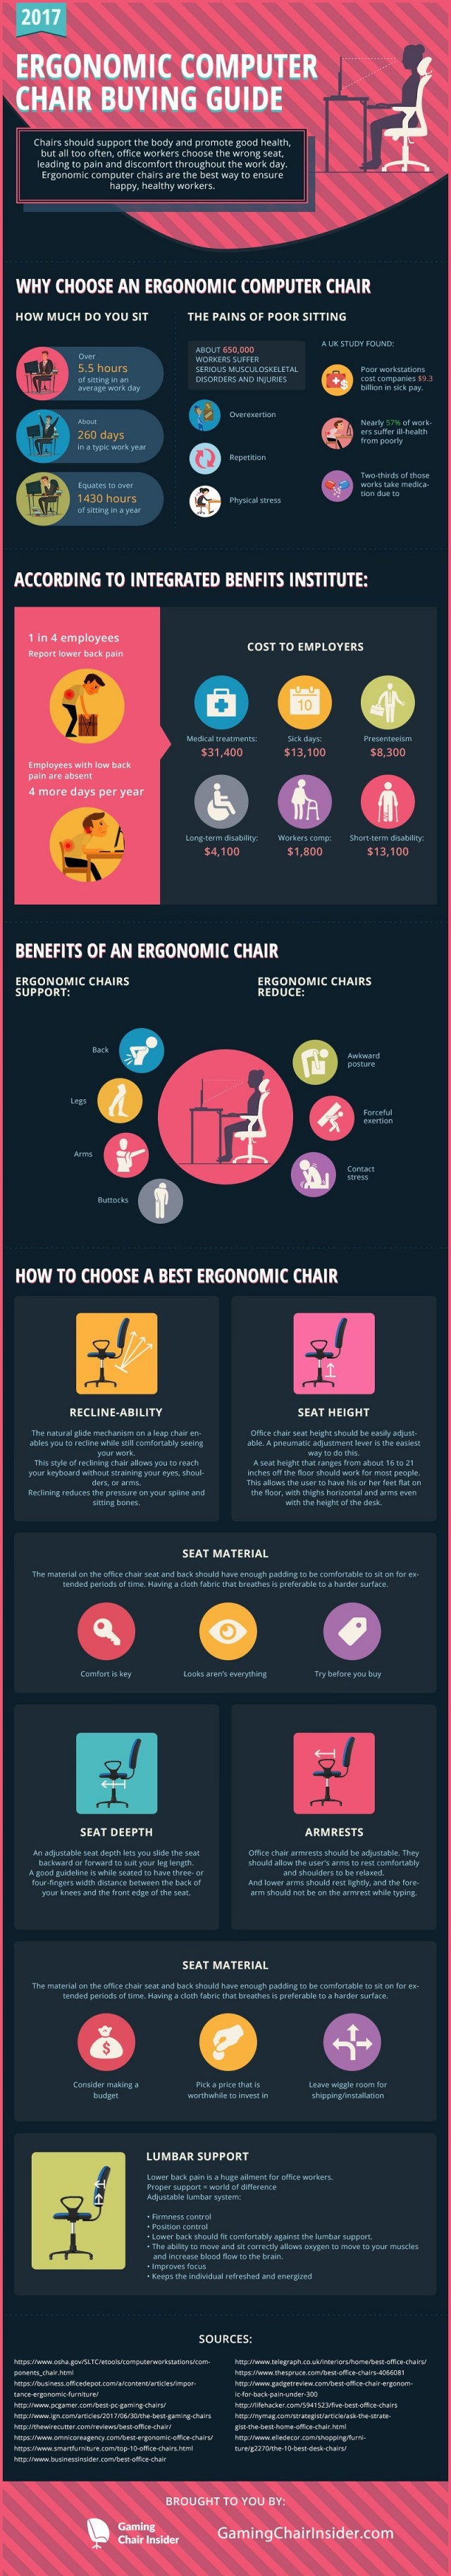 Ergonomic Computer Chair Buying Guide